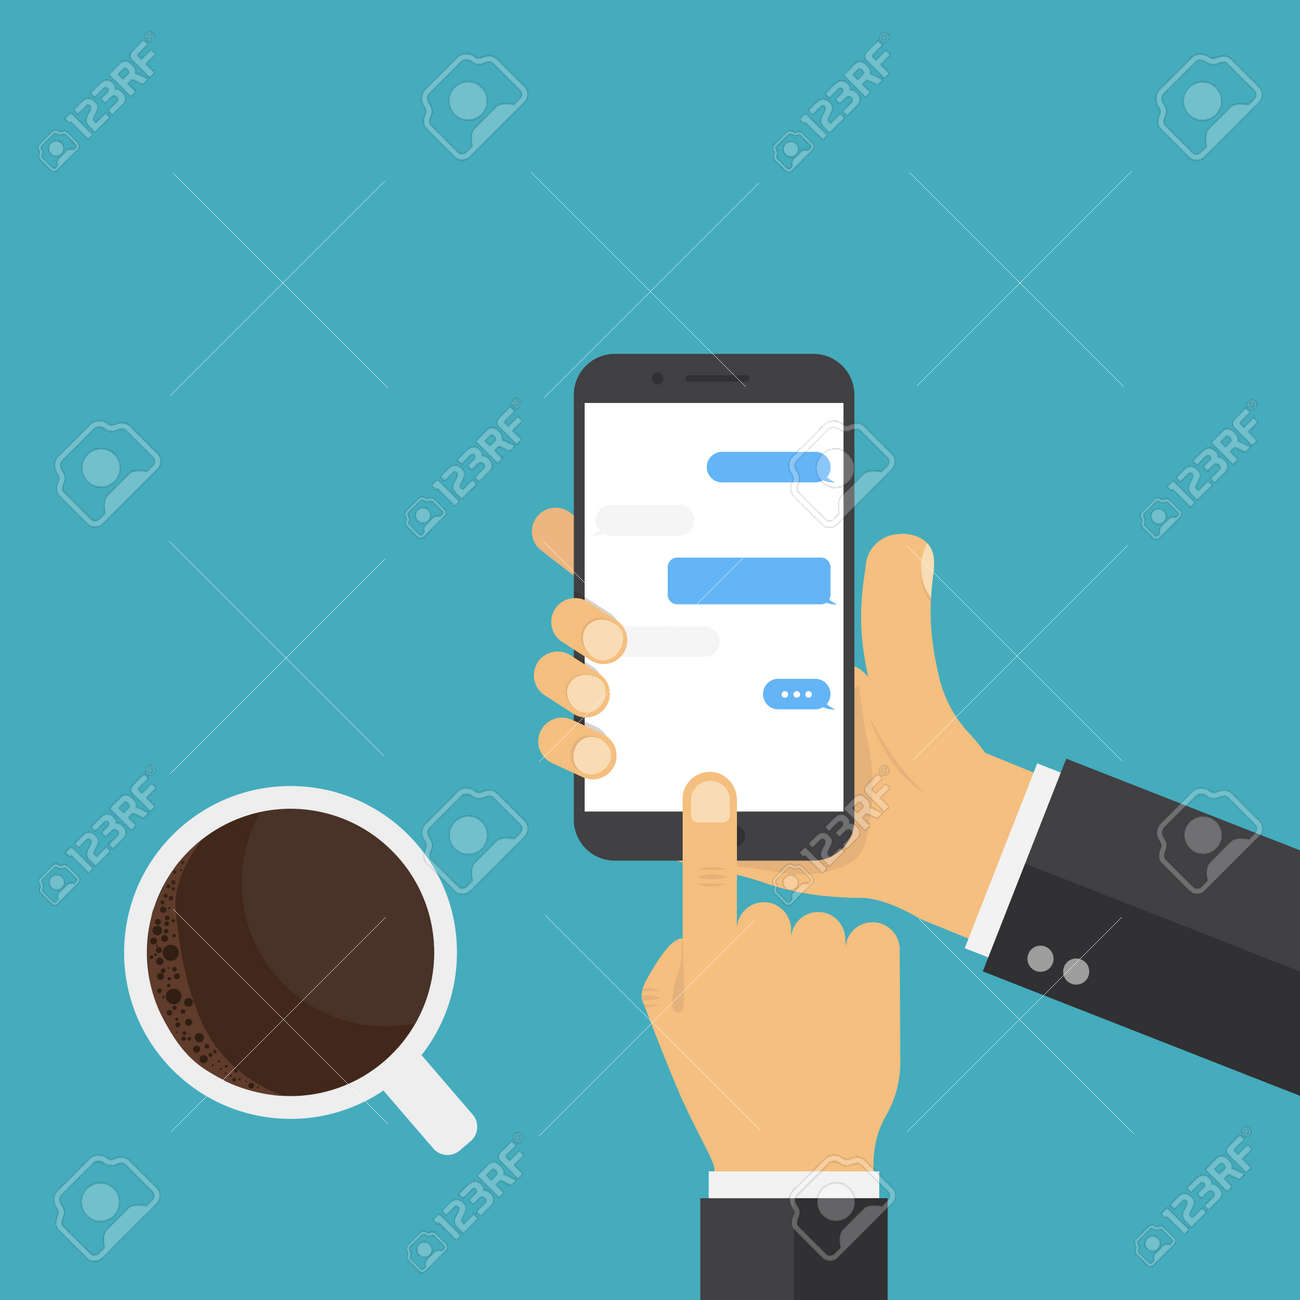 Hand holding smart phone. Coffee hand phone, great design for any purposes. Chat messages concept. - 131066396